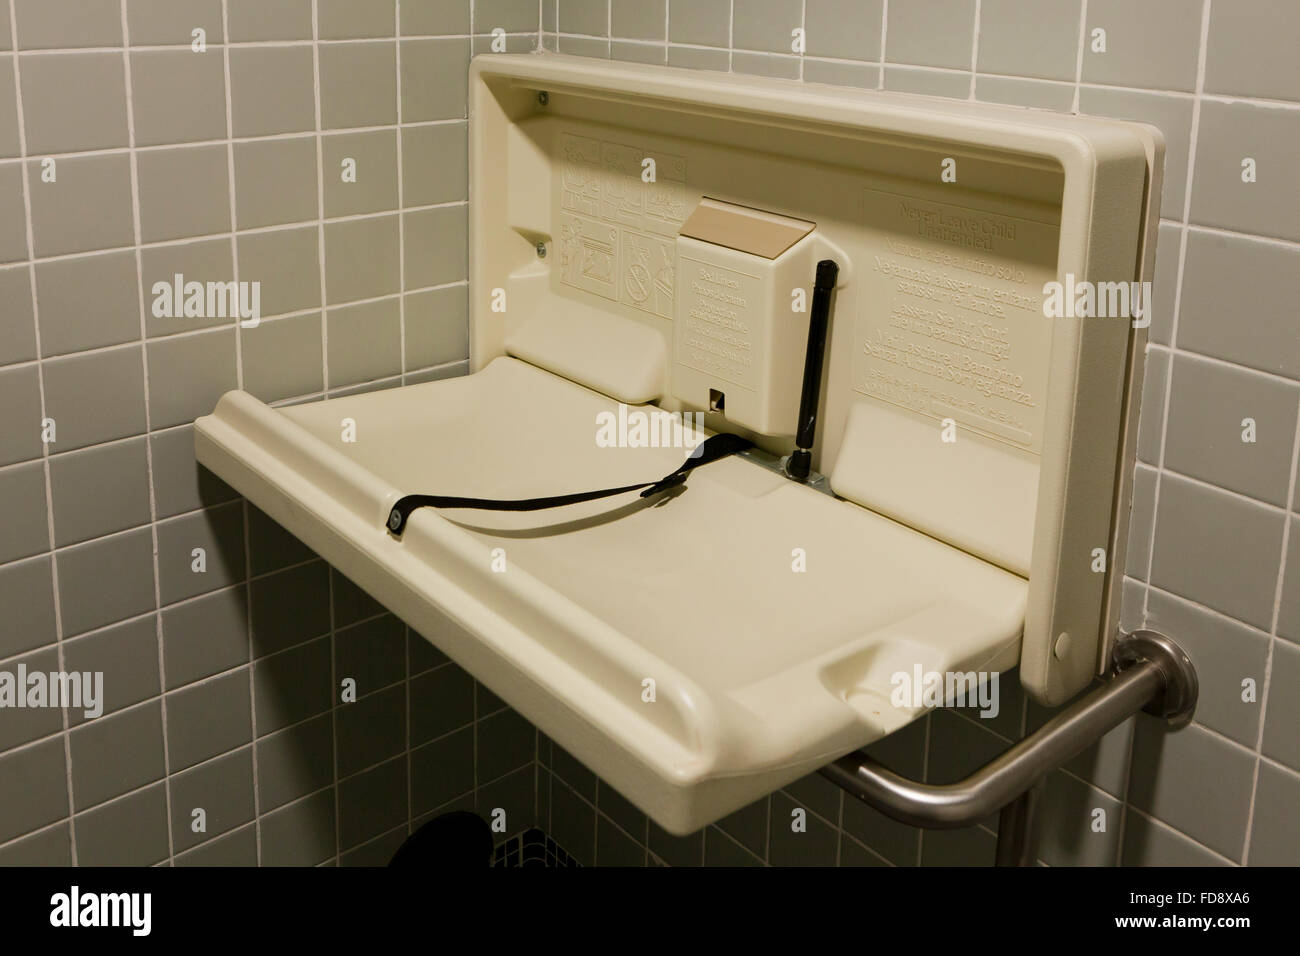 Klappbarer Wickeltisch Changing Table Baby Stockfotos And Changing Table Baby